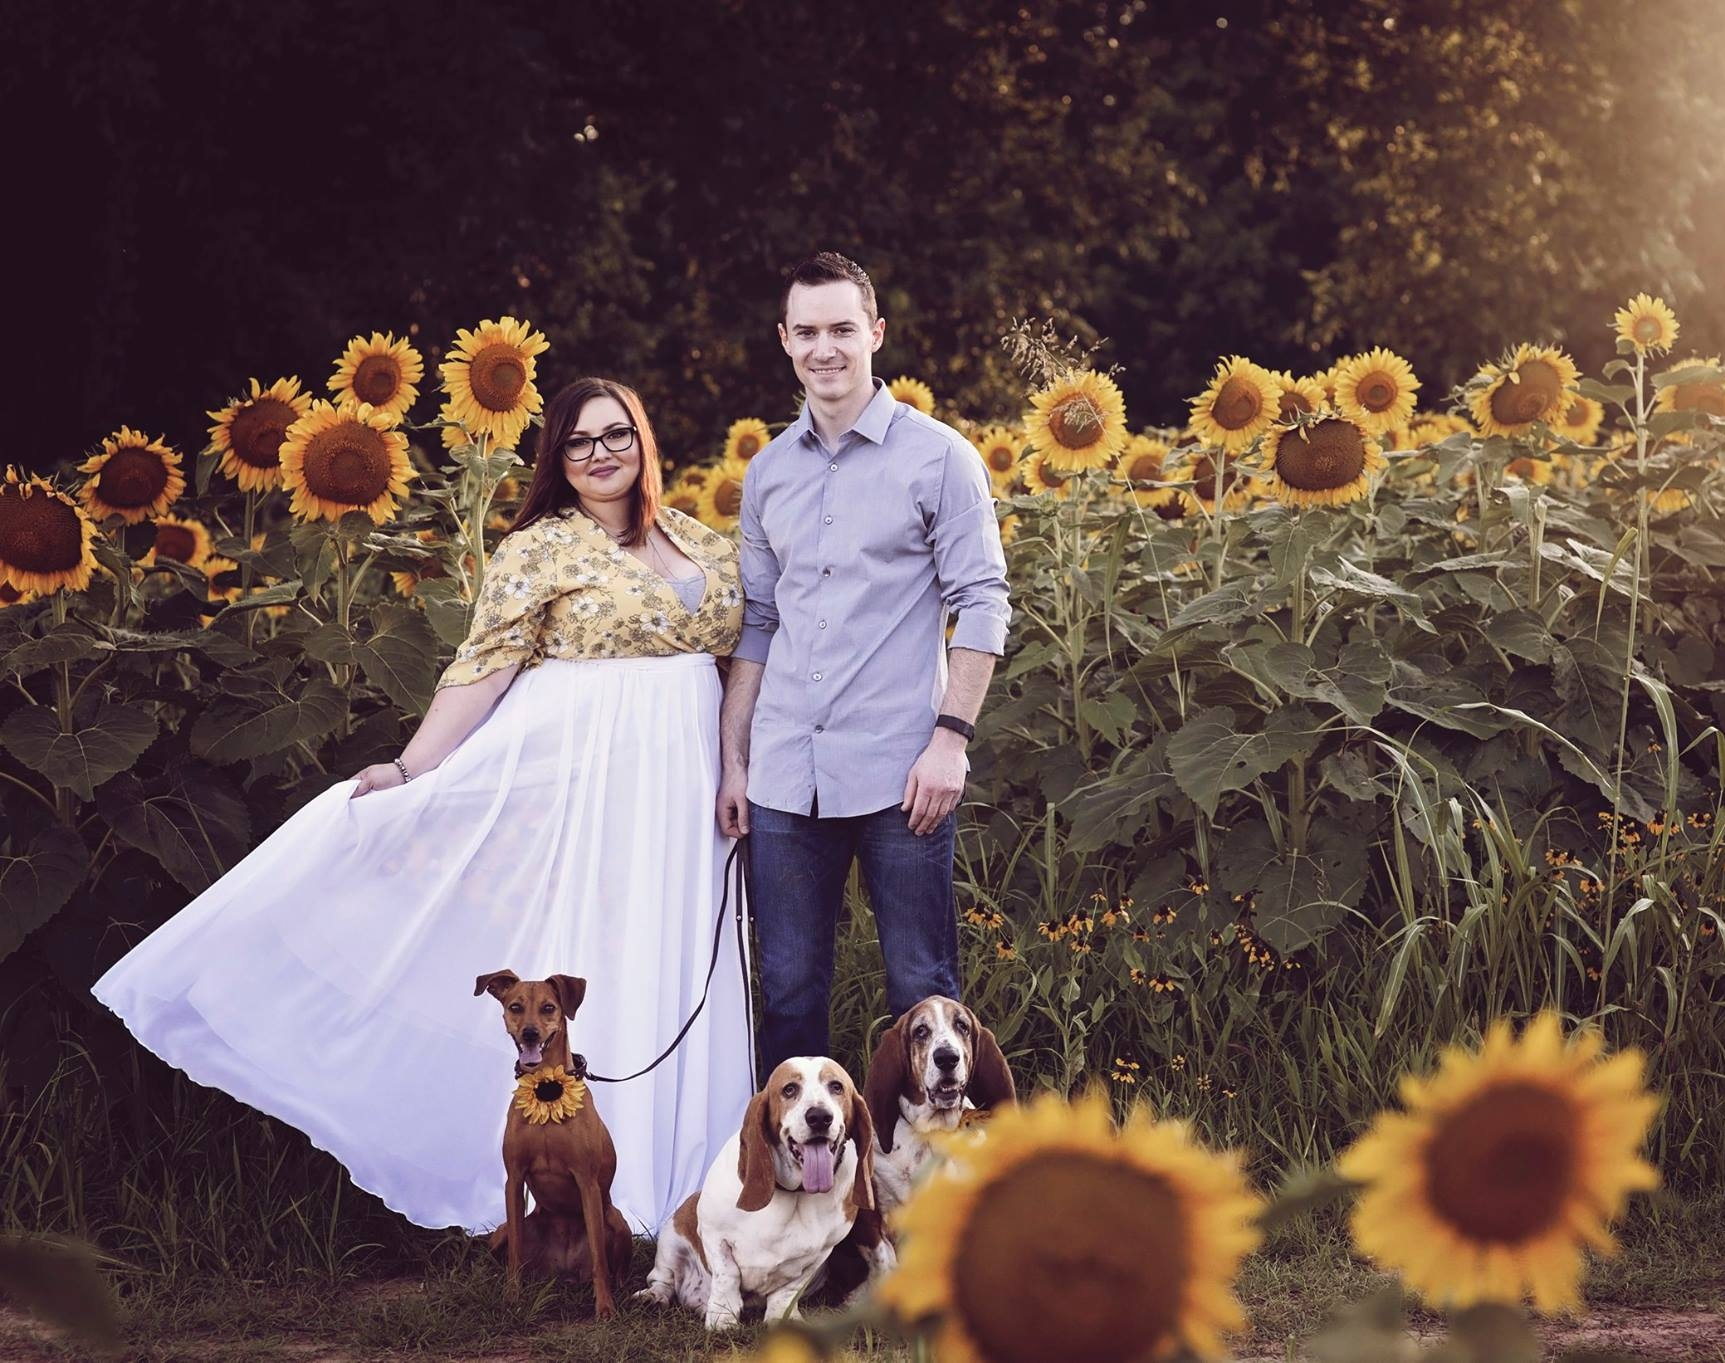 Me, my husband, and our three dogs: Molly, Flash, and Maggie. Photo by Kristina Banks Photography